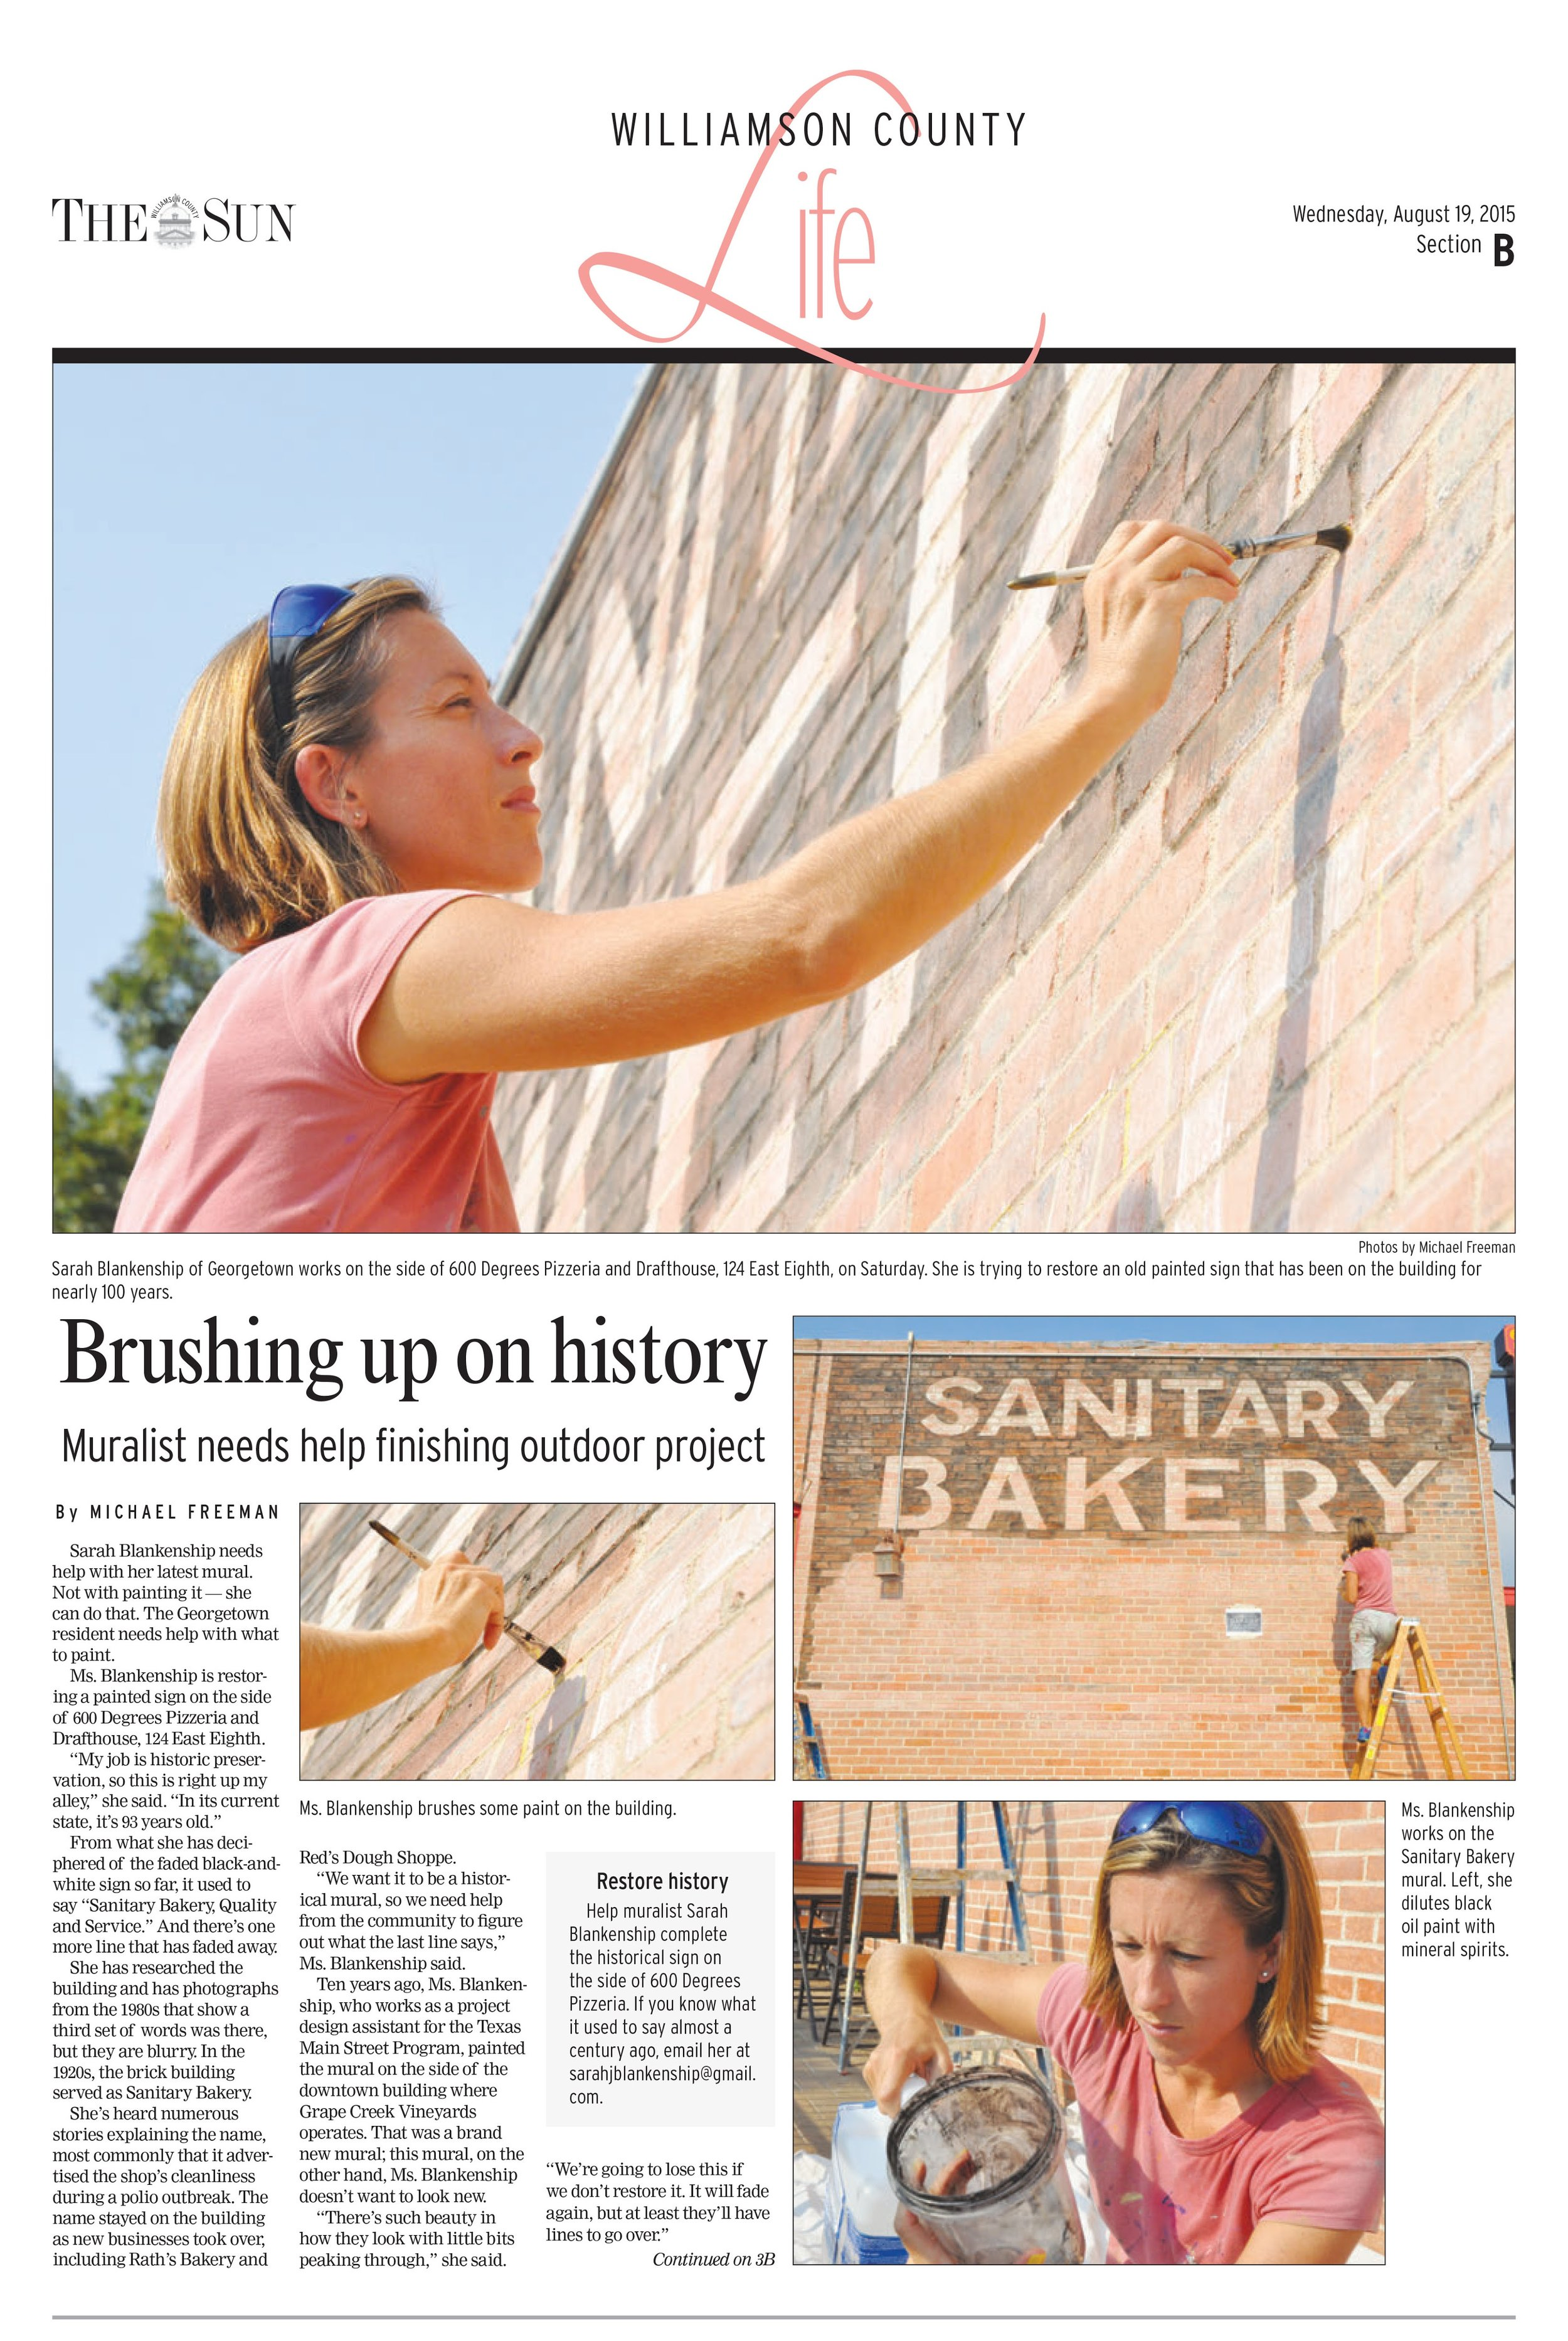 Newspaper feature on the ghost sign and call to the community for more information on missing information